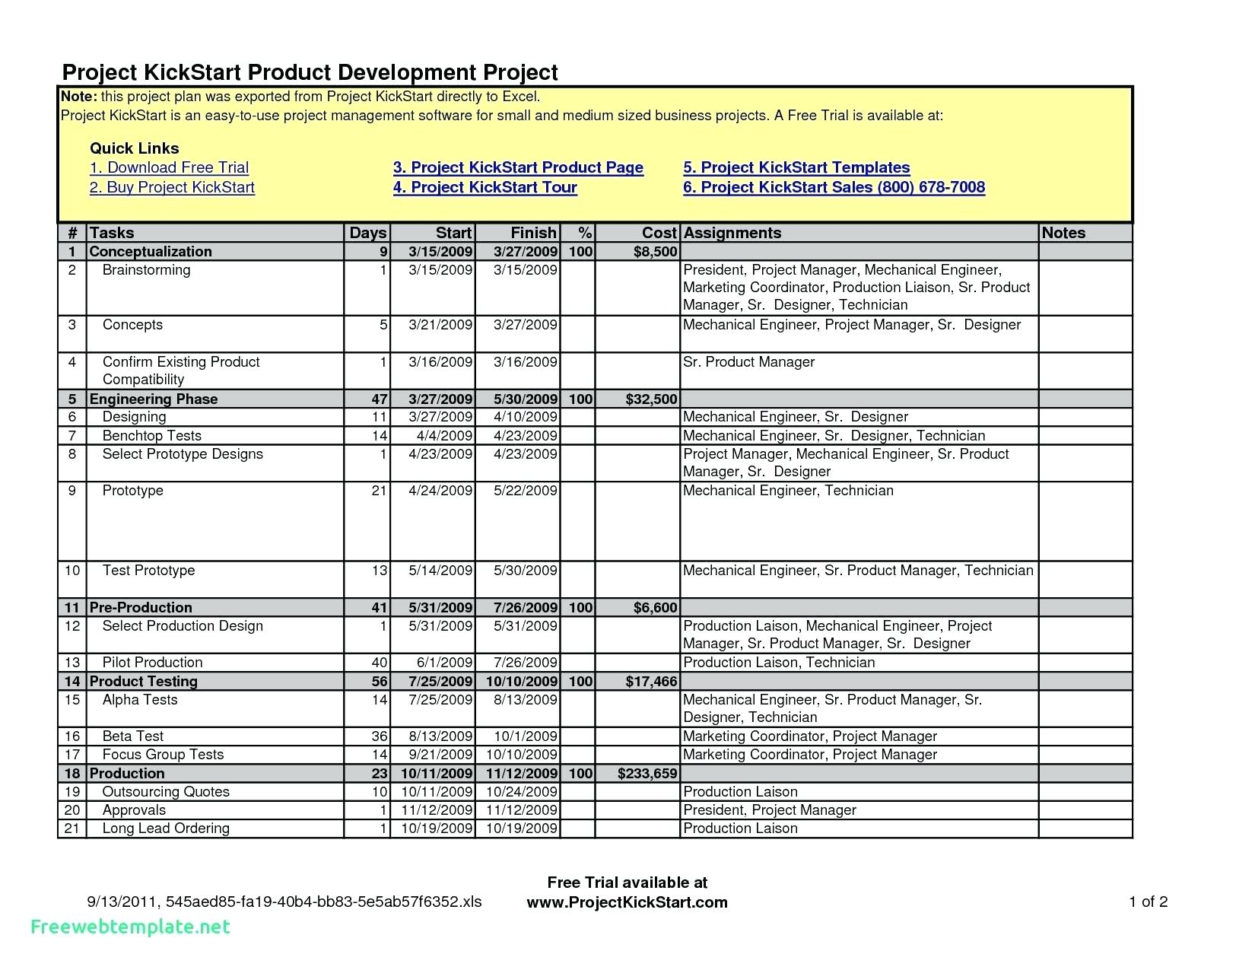 Resource Planning Spreadsheet Template Inside Project Management Spreadsheet Template Free Excel Template With